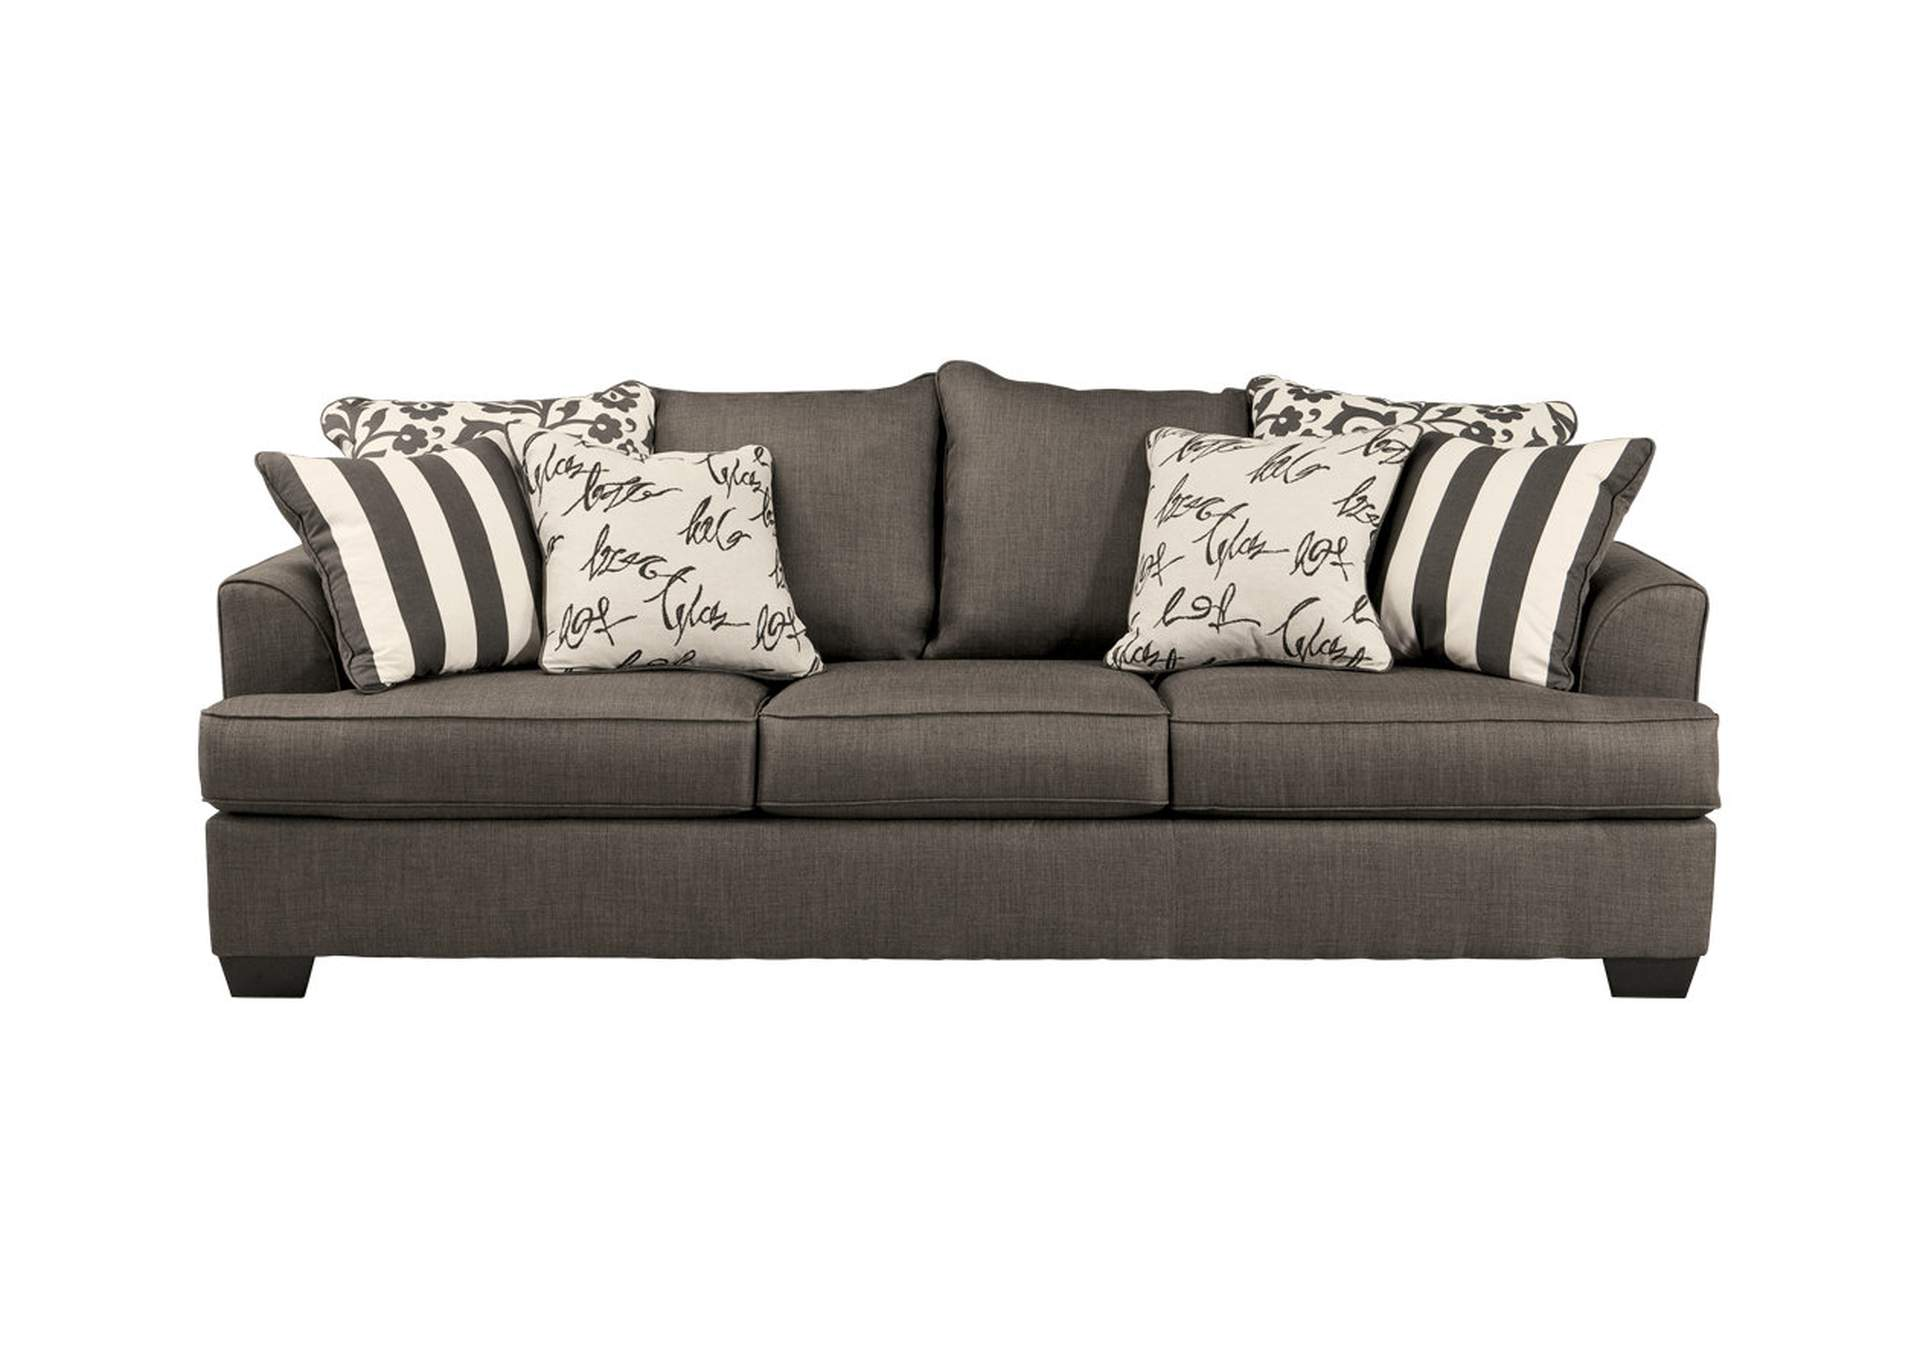 Levon Charcoal Queen Sofa Sleeper,Signature Design By Ashley